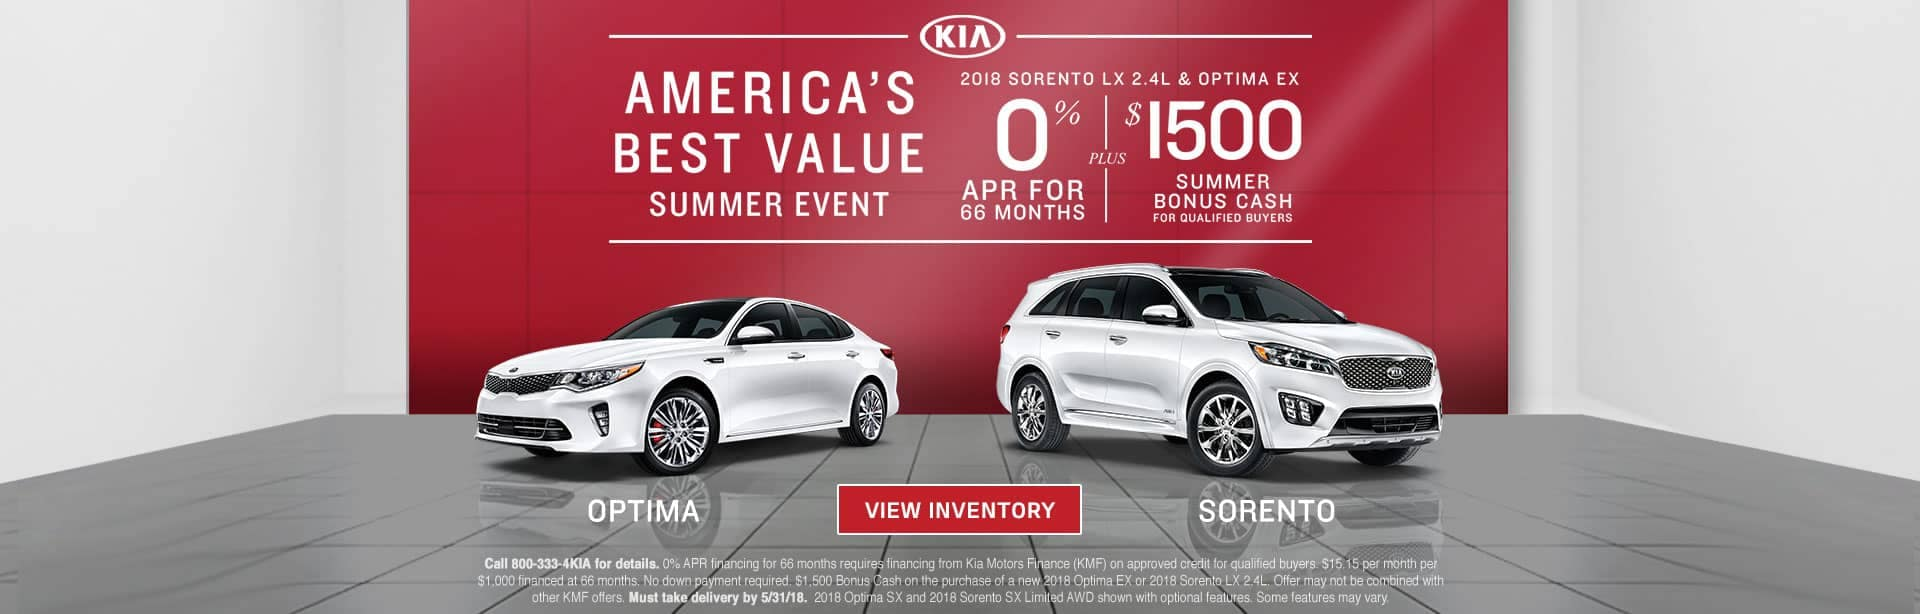 Americas Best Value SSE Optima Sorento